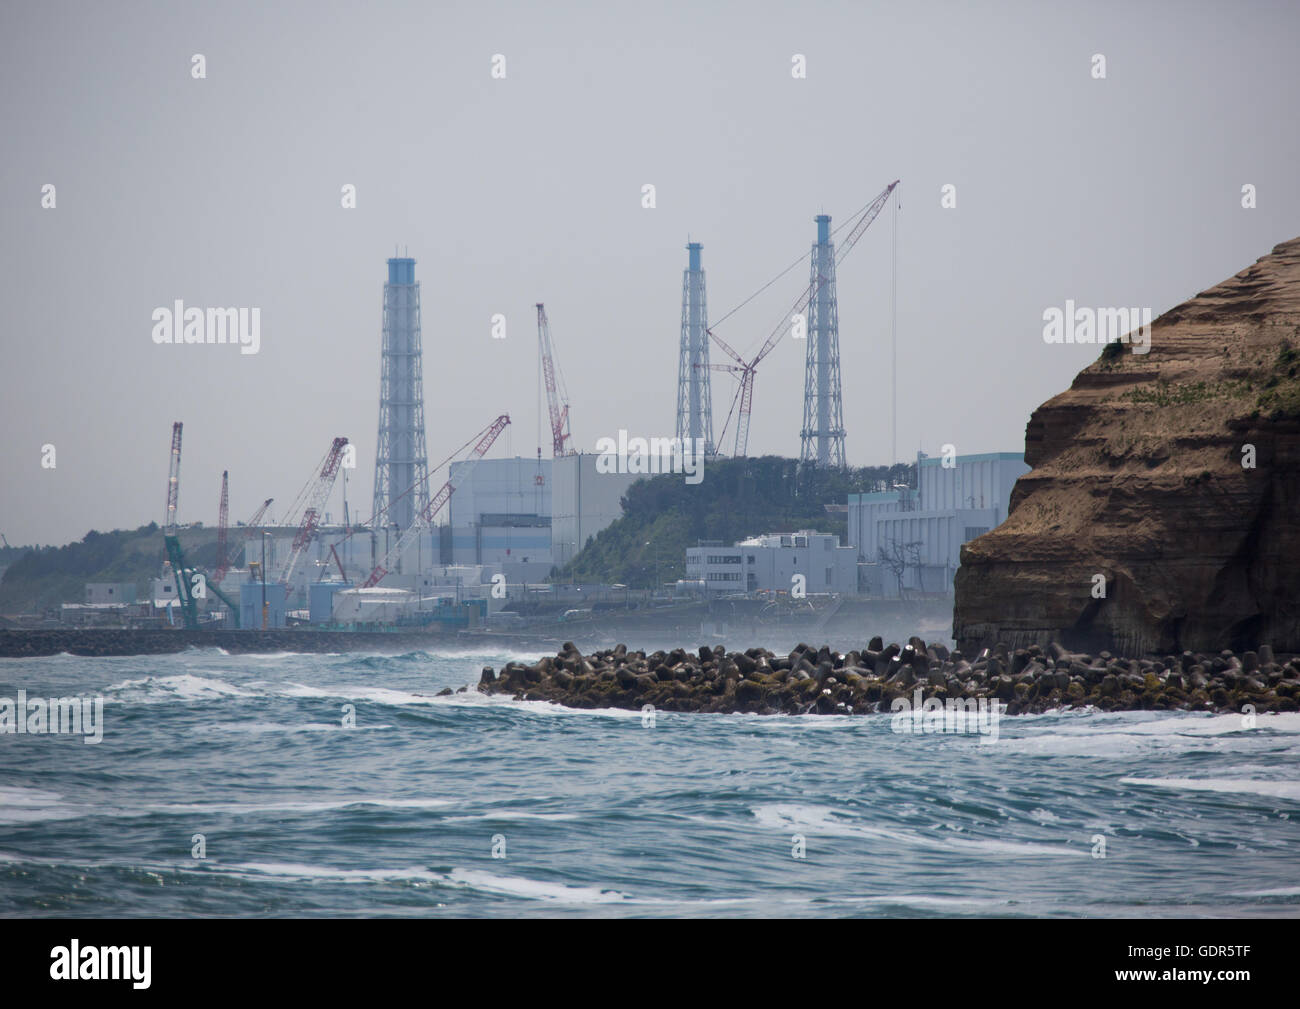 Fukushima daiichi nuclear power plant five years after the tsunami, Fukushima prefecture, Futaba, Japan - Stock Image